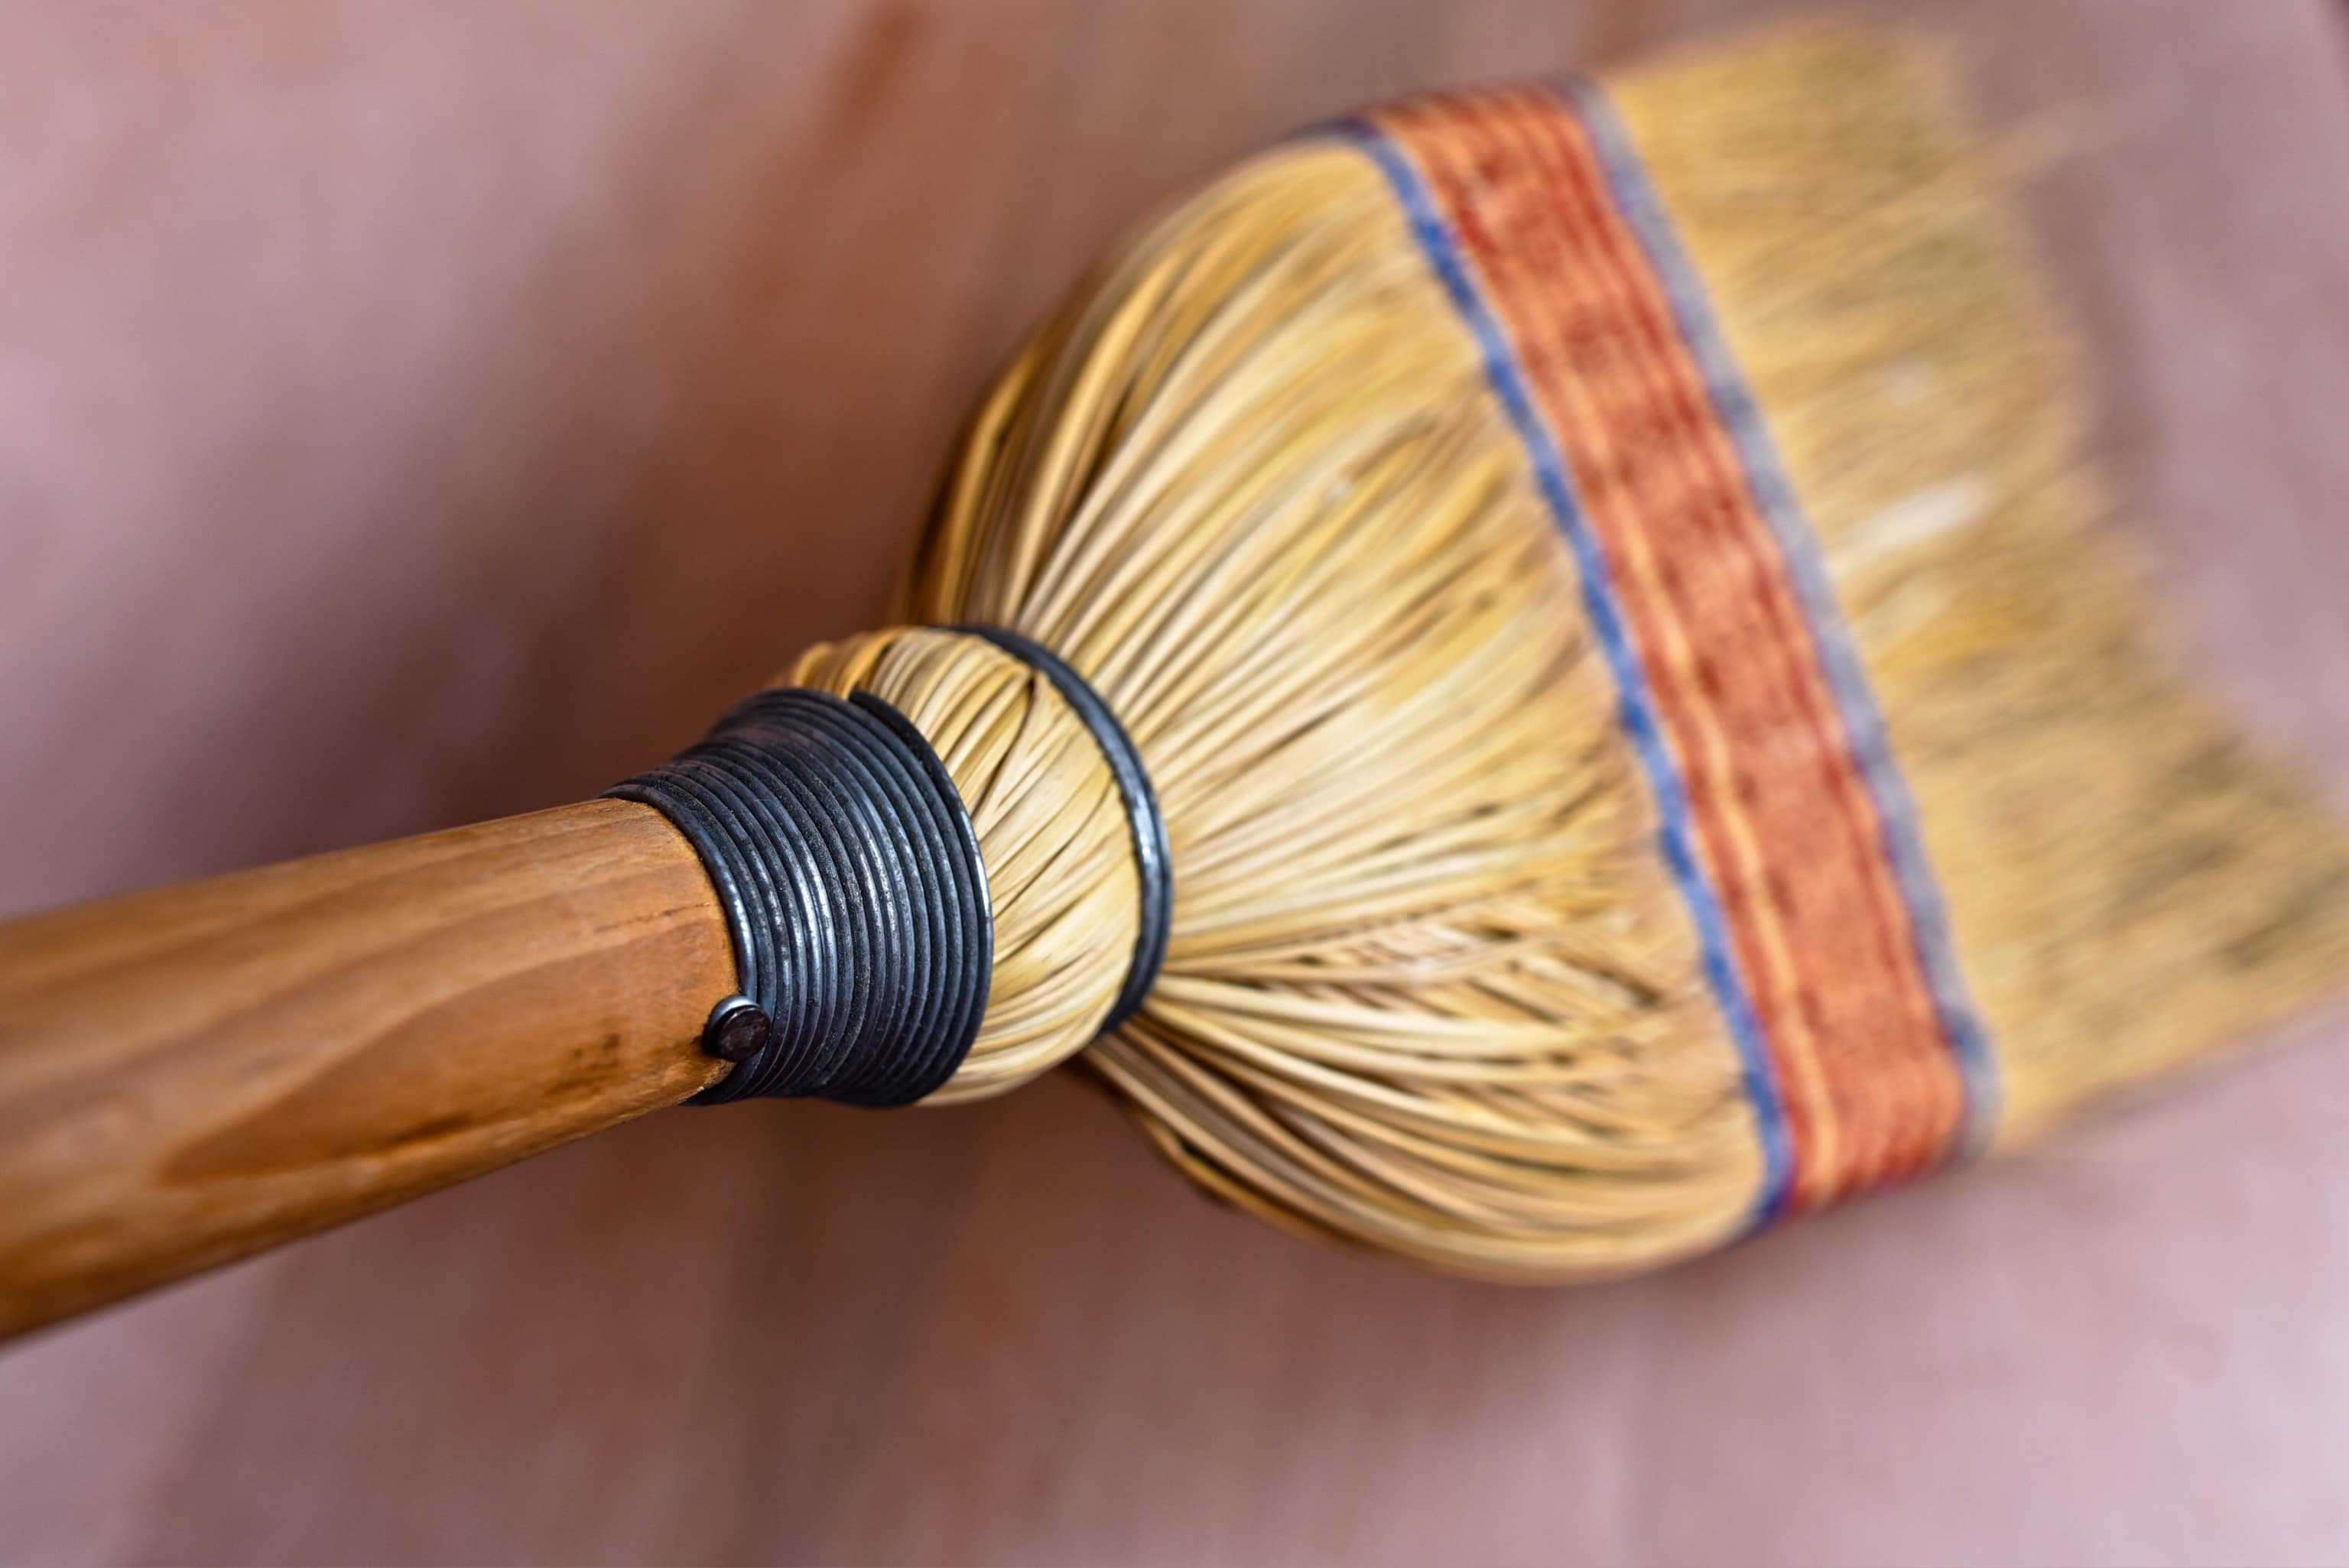 a picture of a broom